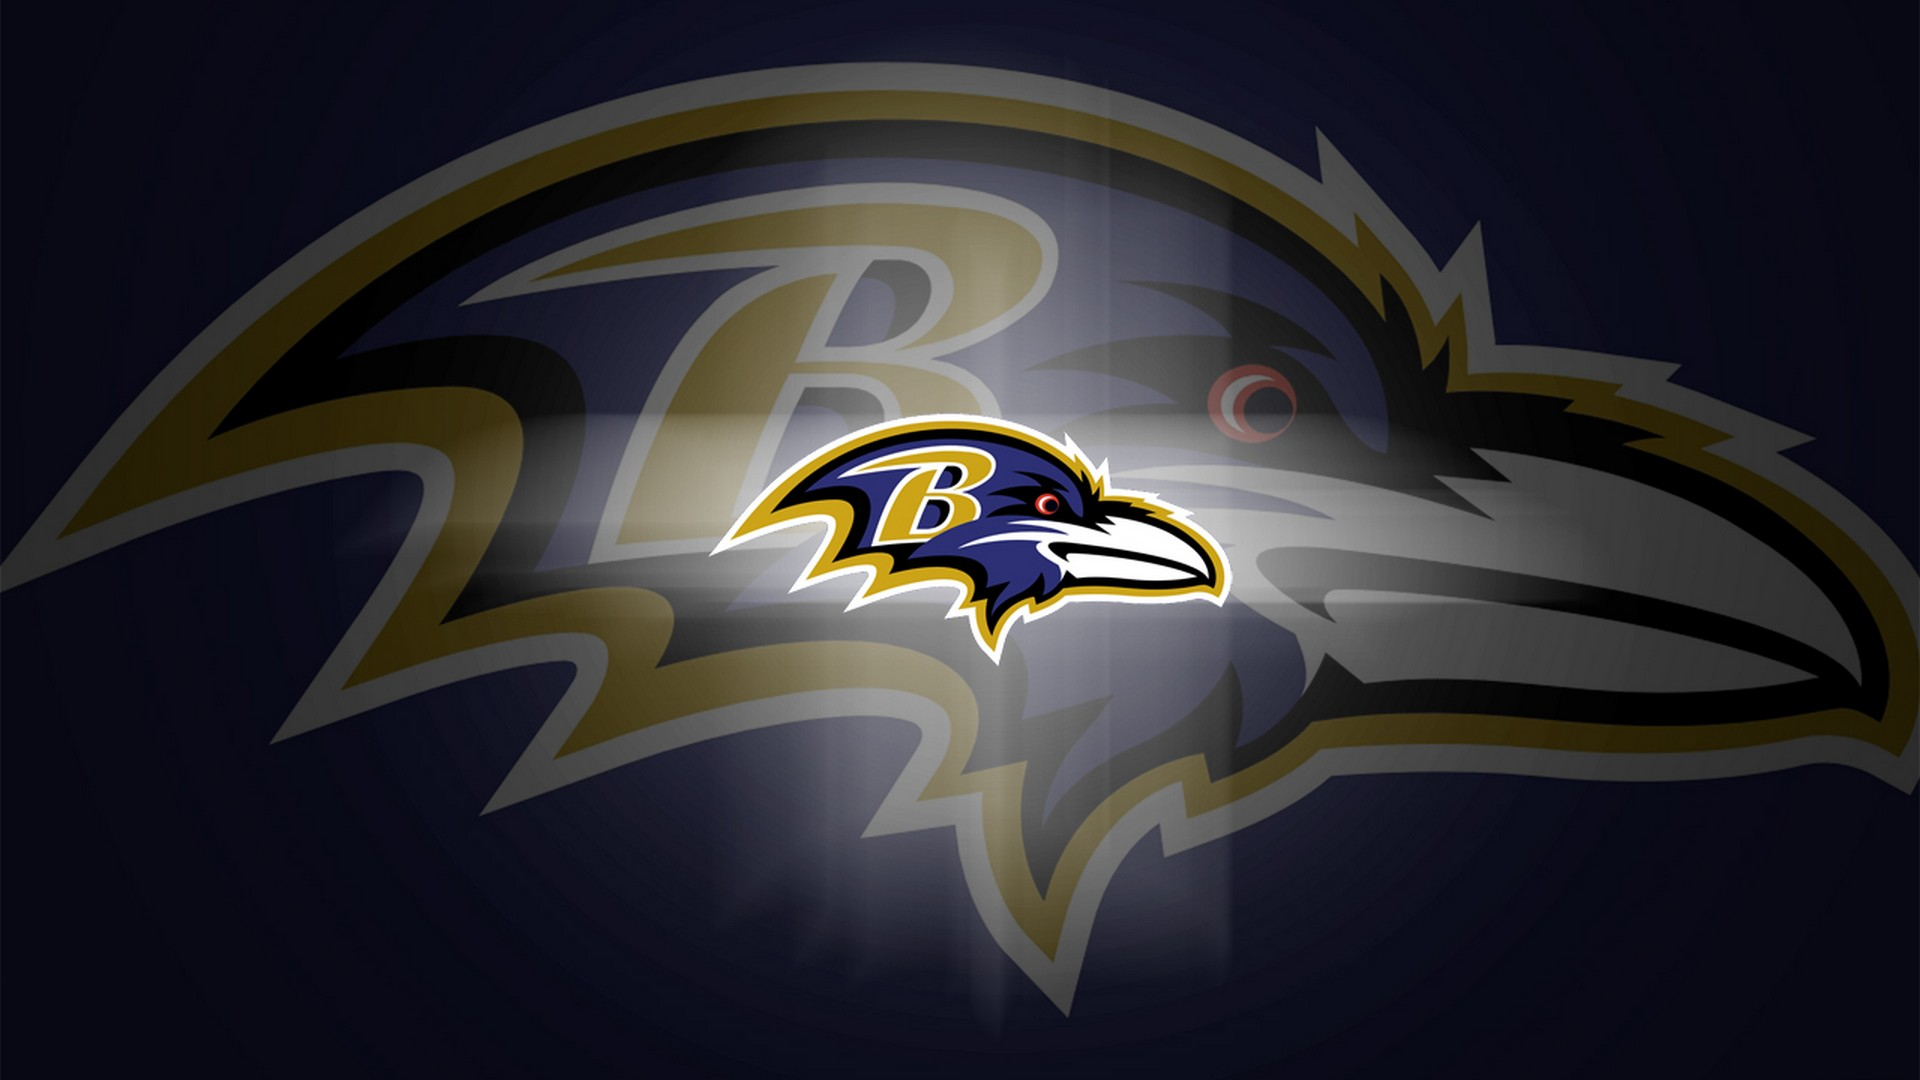 Baltimore Ravens Desktop Wallpapers 2020 NFL Football Wallpapers 1920x1080